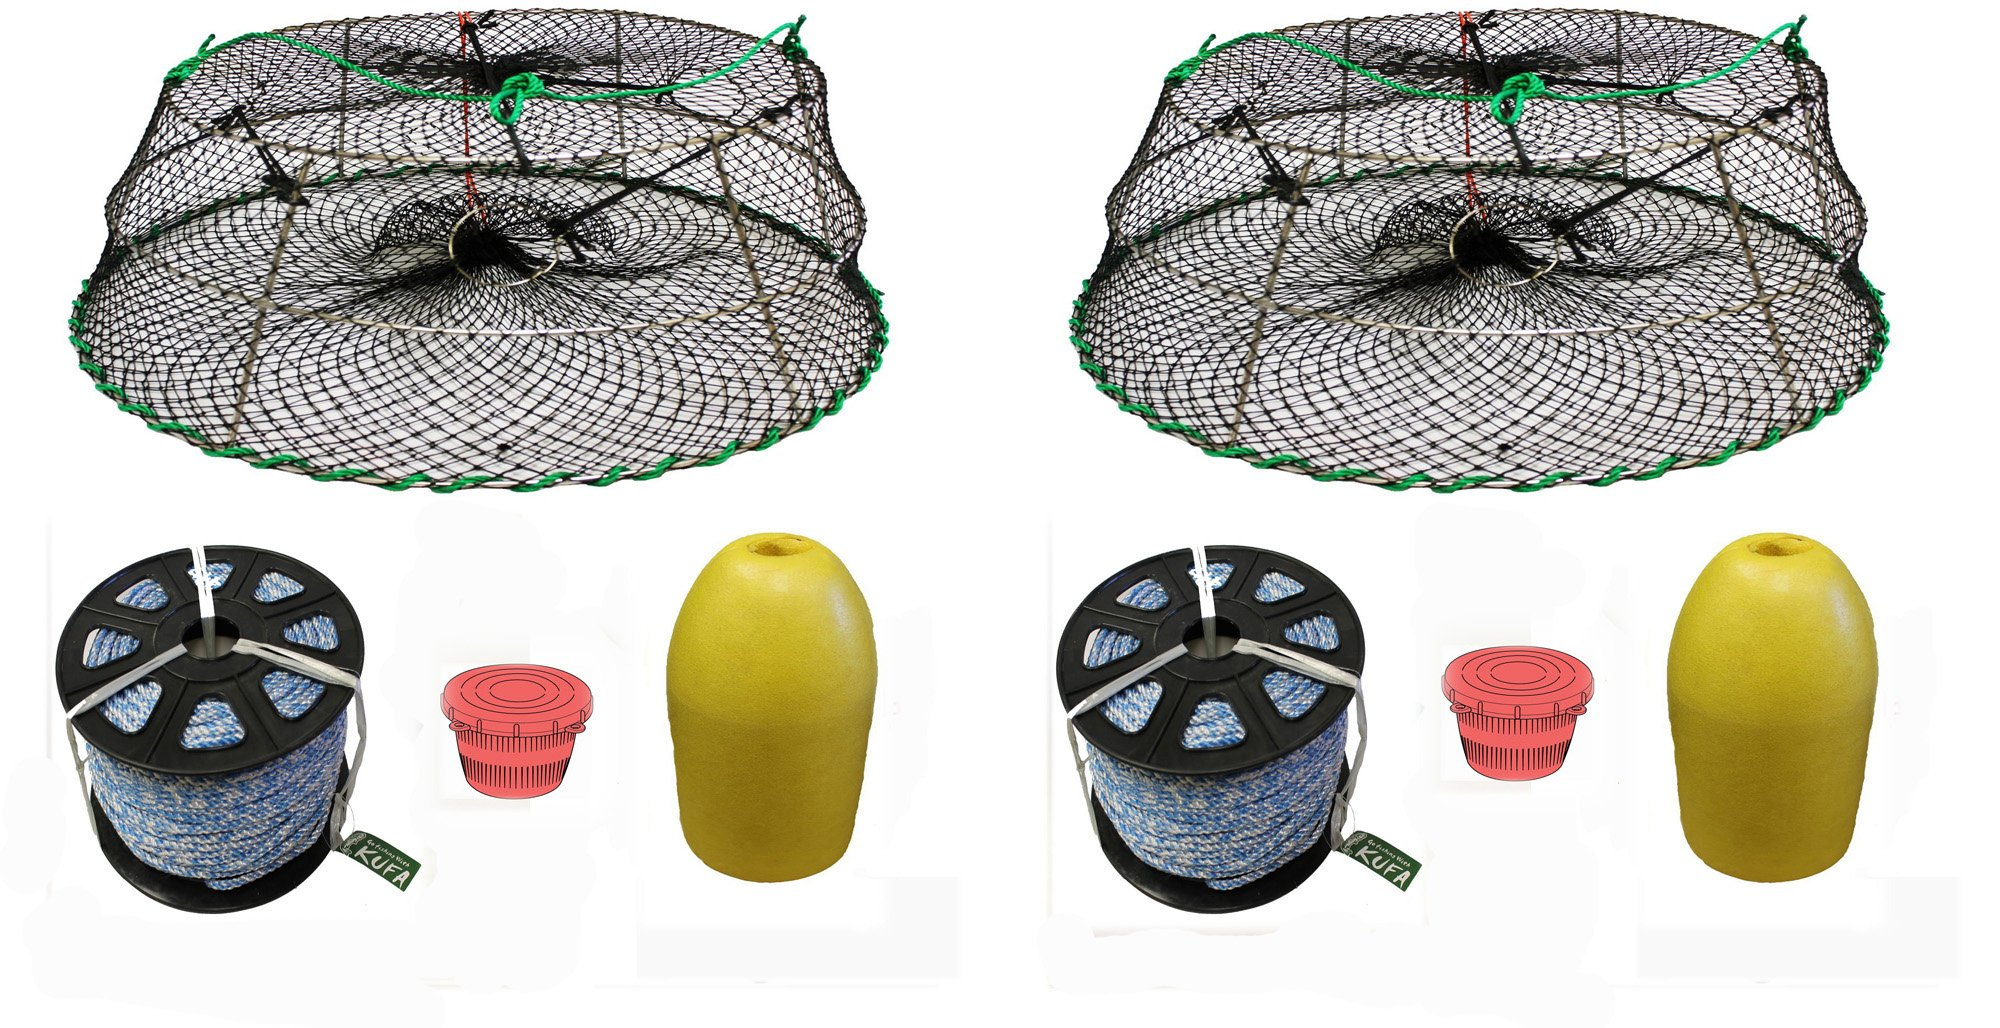 2-Pack of KUFA Sports Tower Style Prawn trap with 400' rope, Yellow float and Vented Bait Jar combo (CT77+PAS1)X2 by KUFA Sports